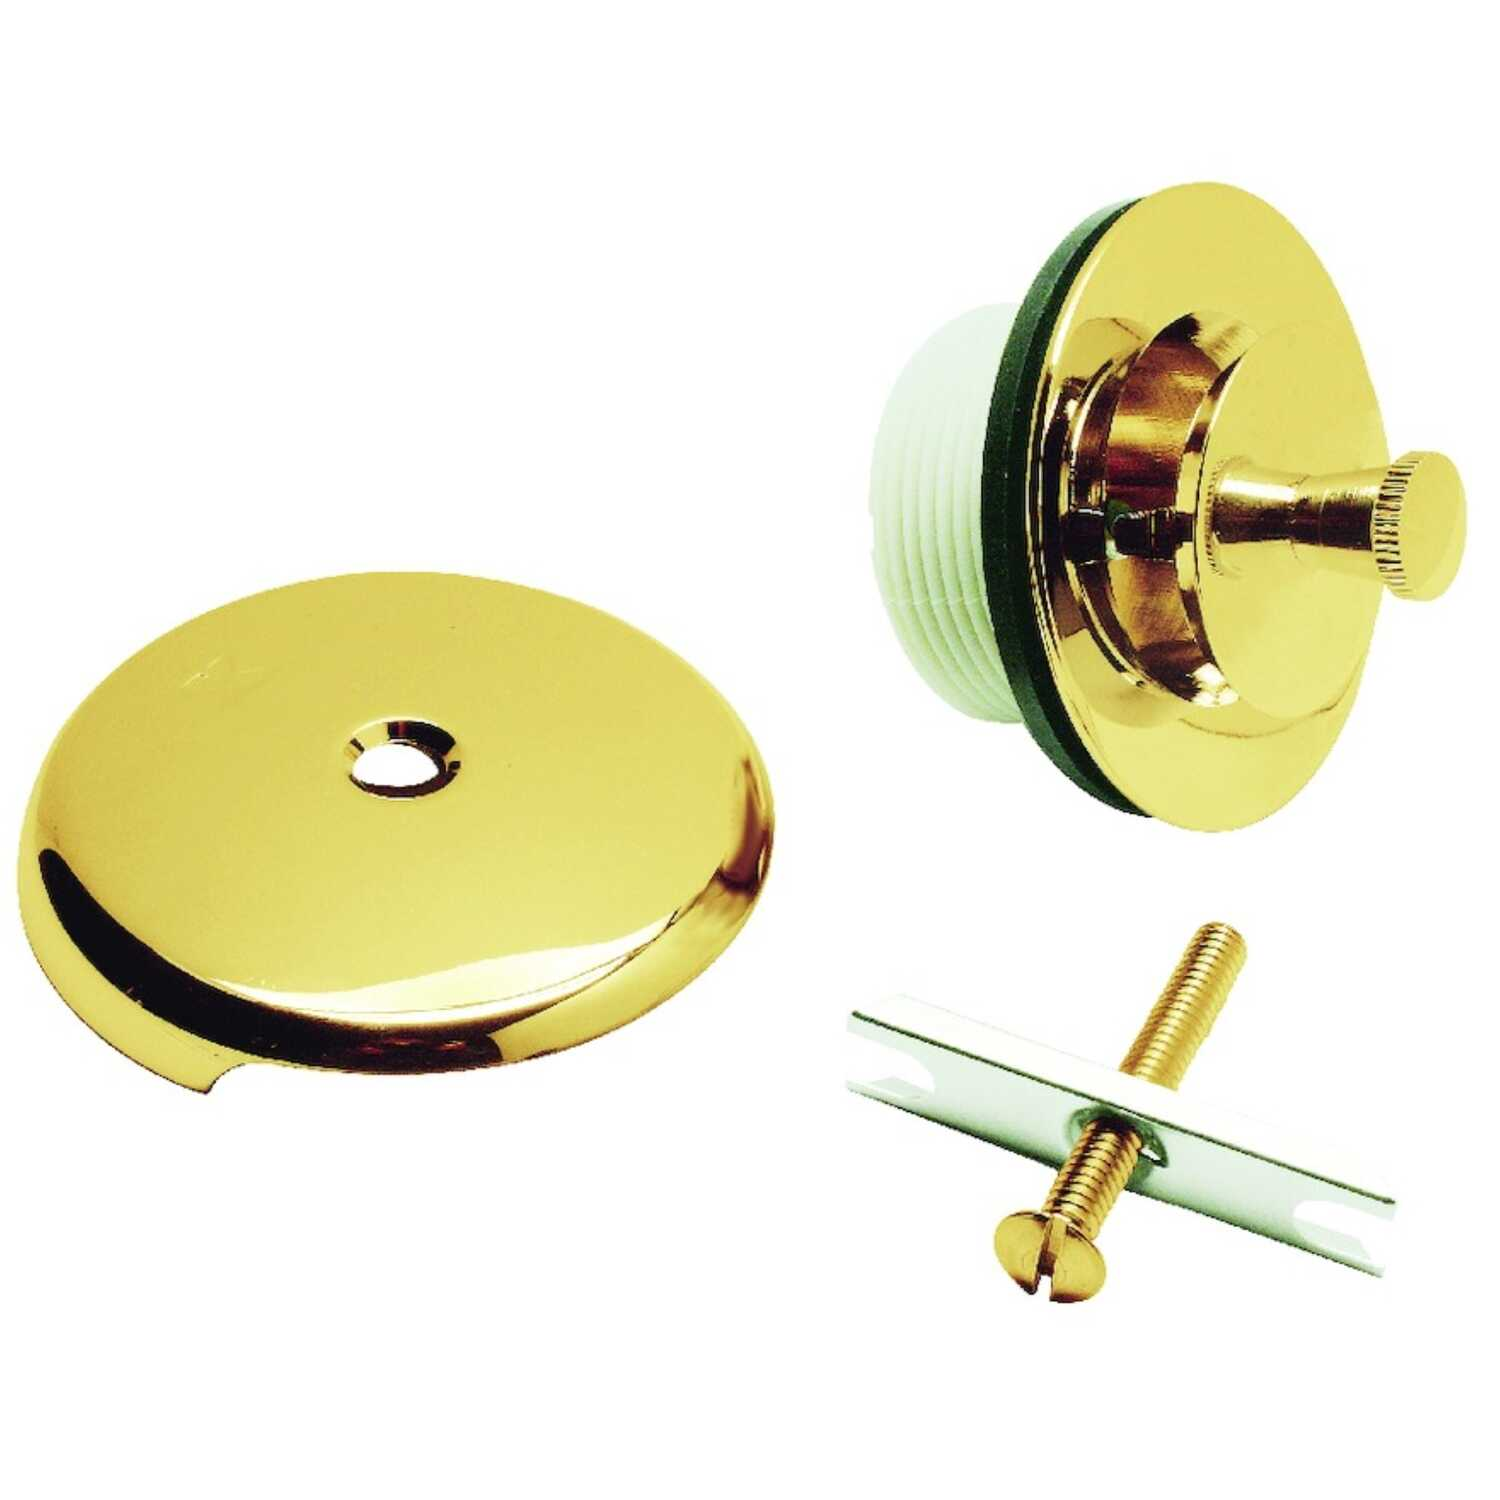 Ace  Trim Kit  1  N/A  Polished Brass Finish Brass Material